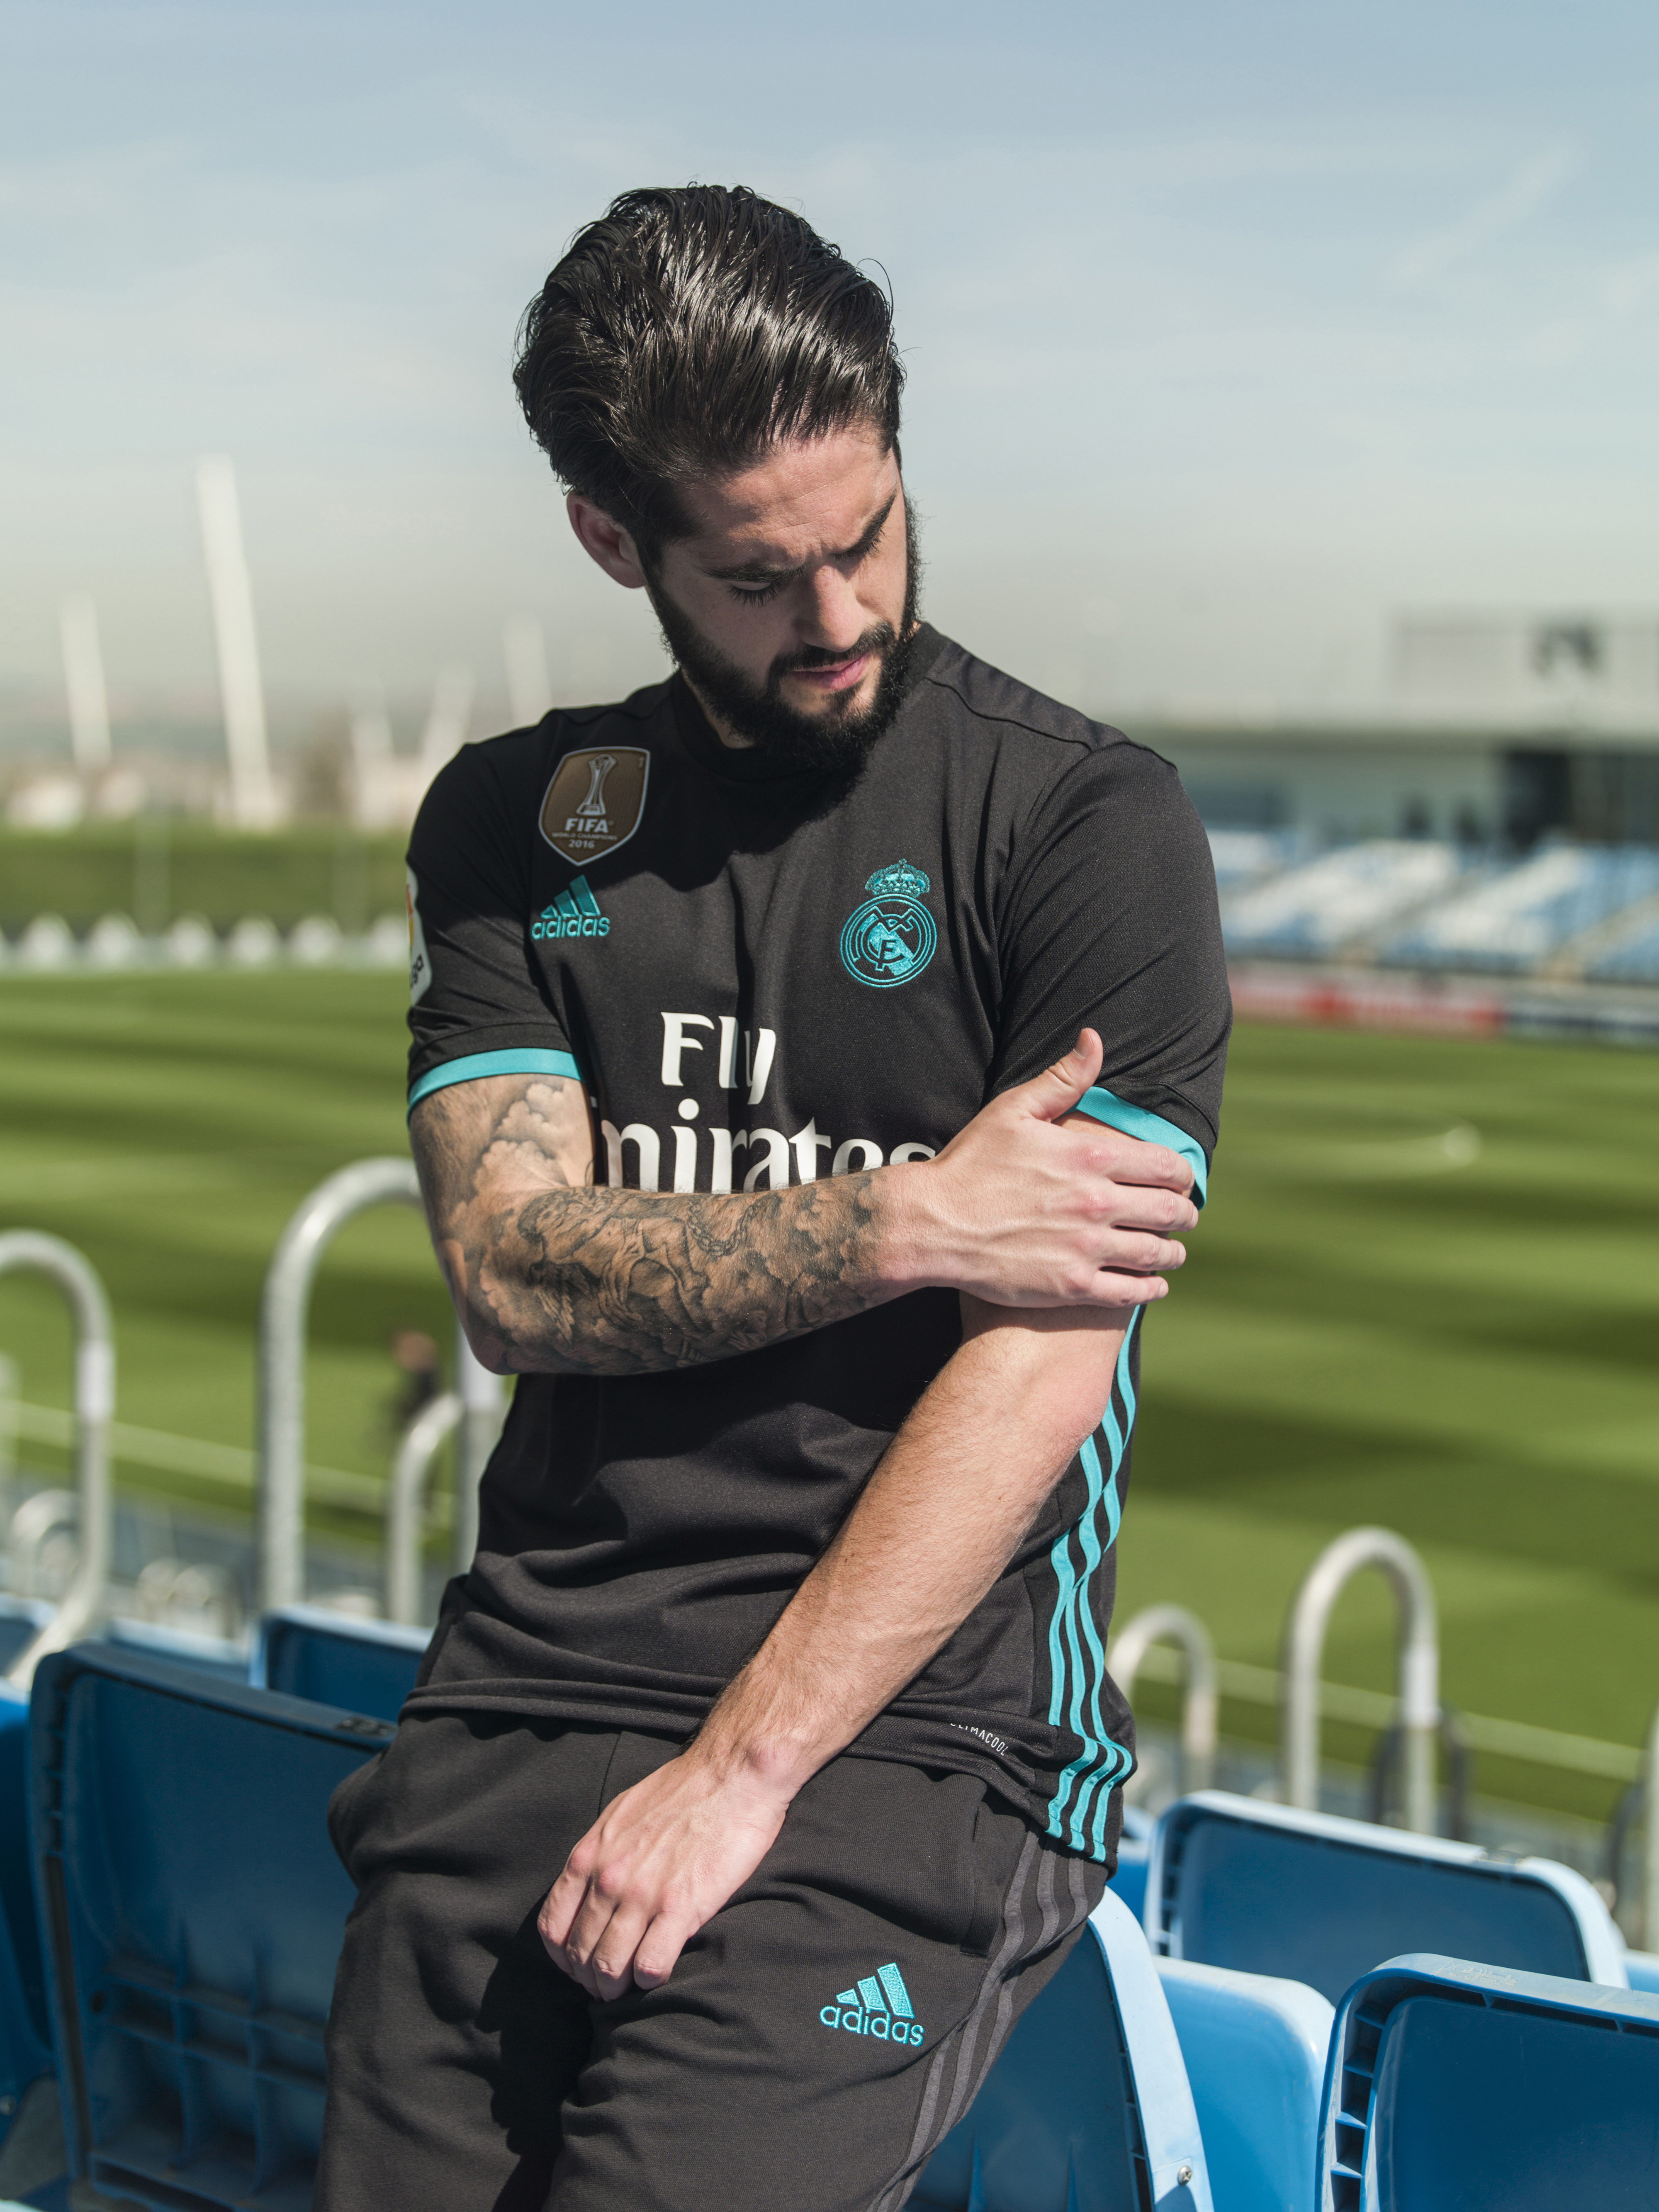 633033d4627 Real Madrid and adidas Reveal New 2017 18 Kits - Pursuit Of Dopeness